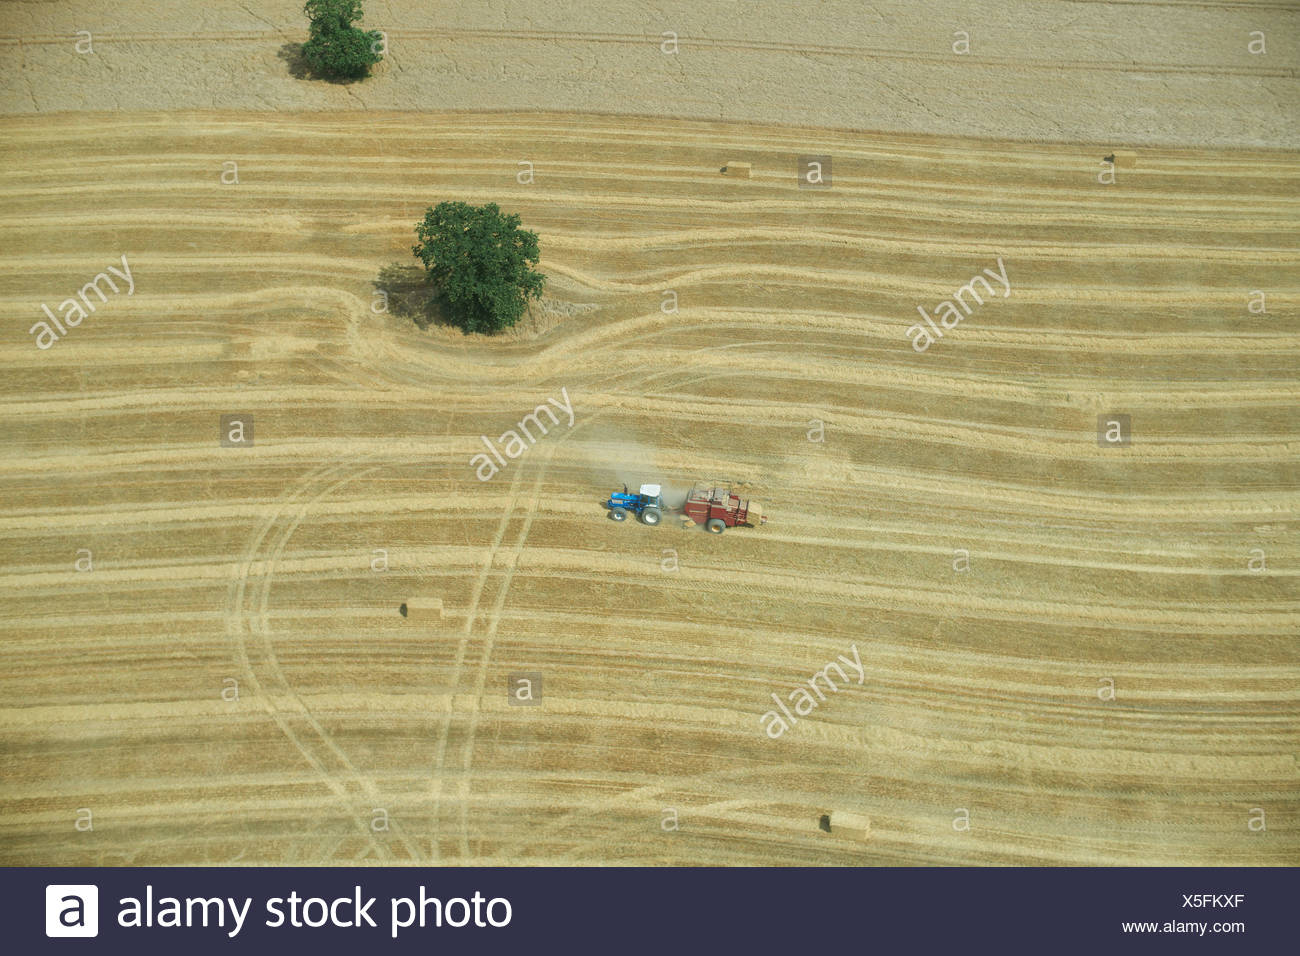 Aerial view of tractor in crop field Stock Photo